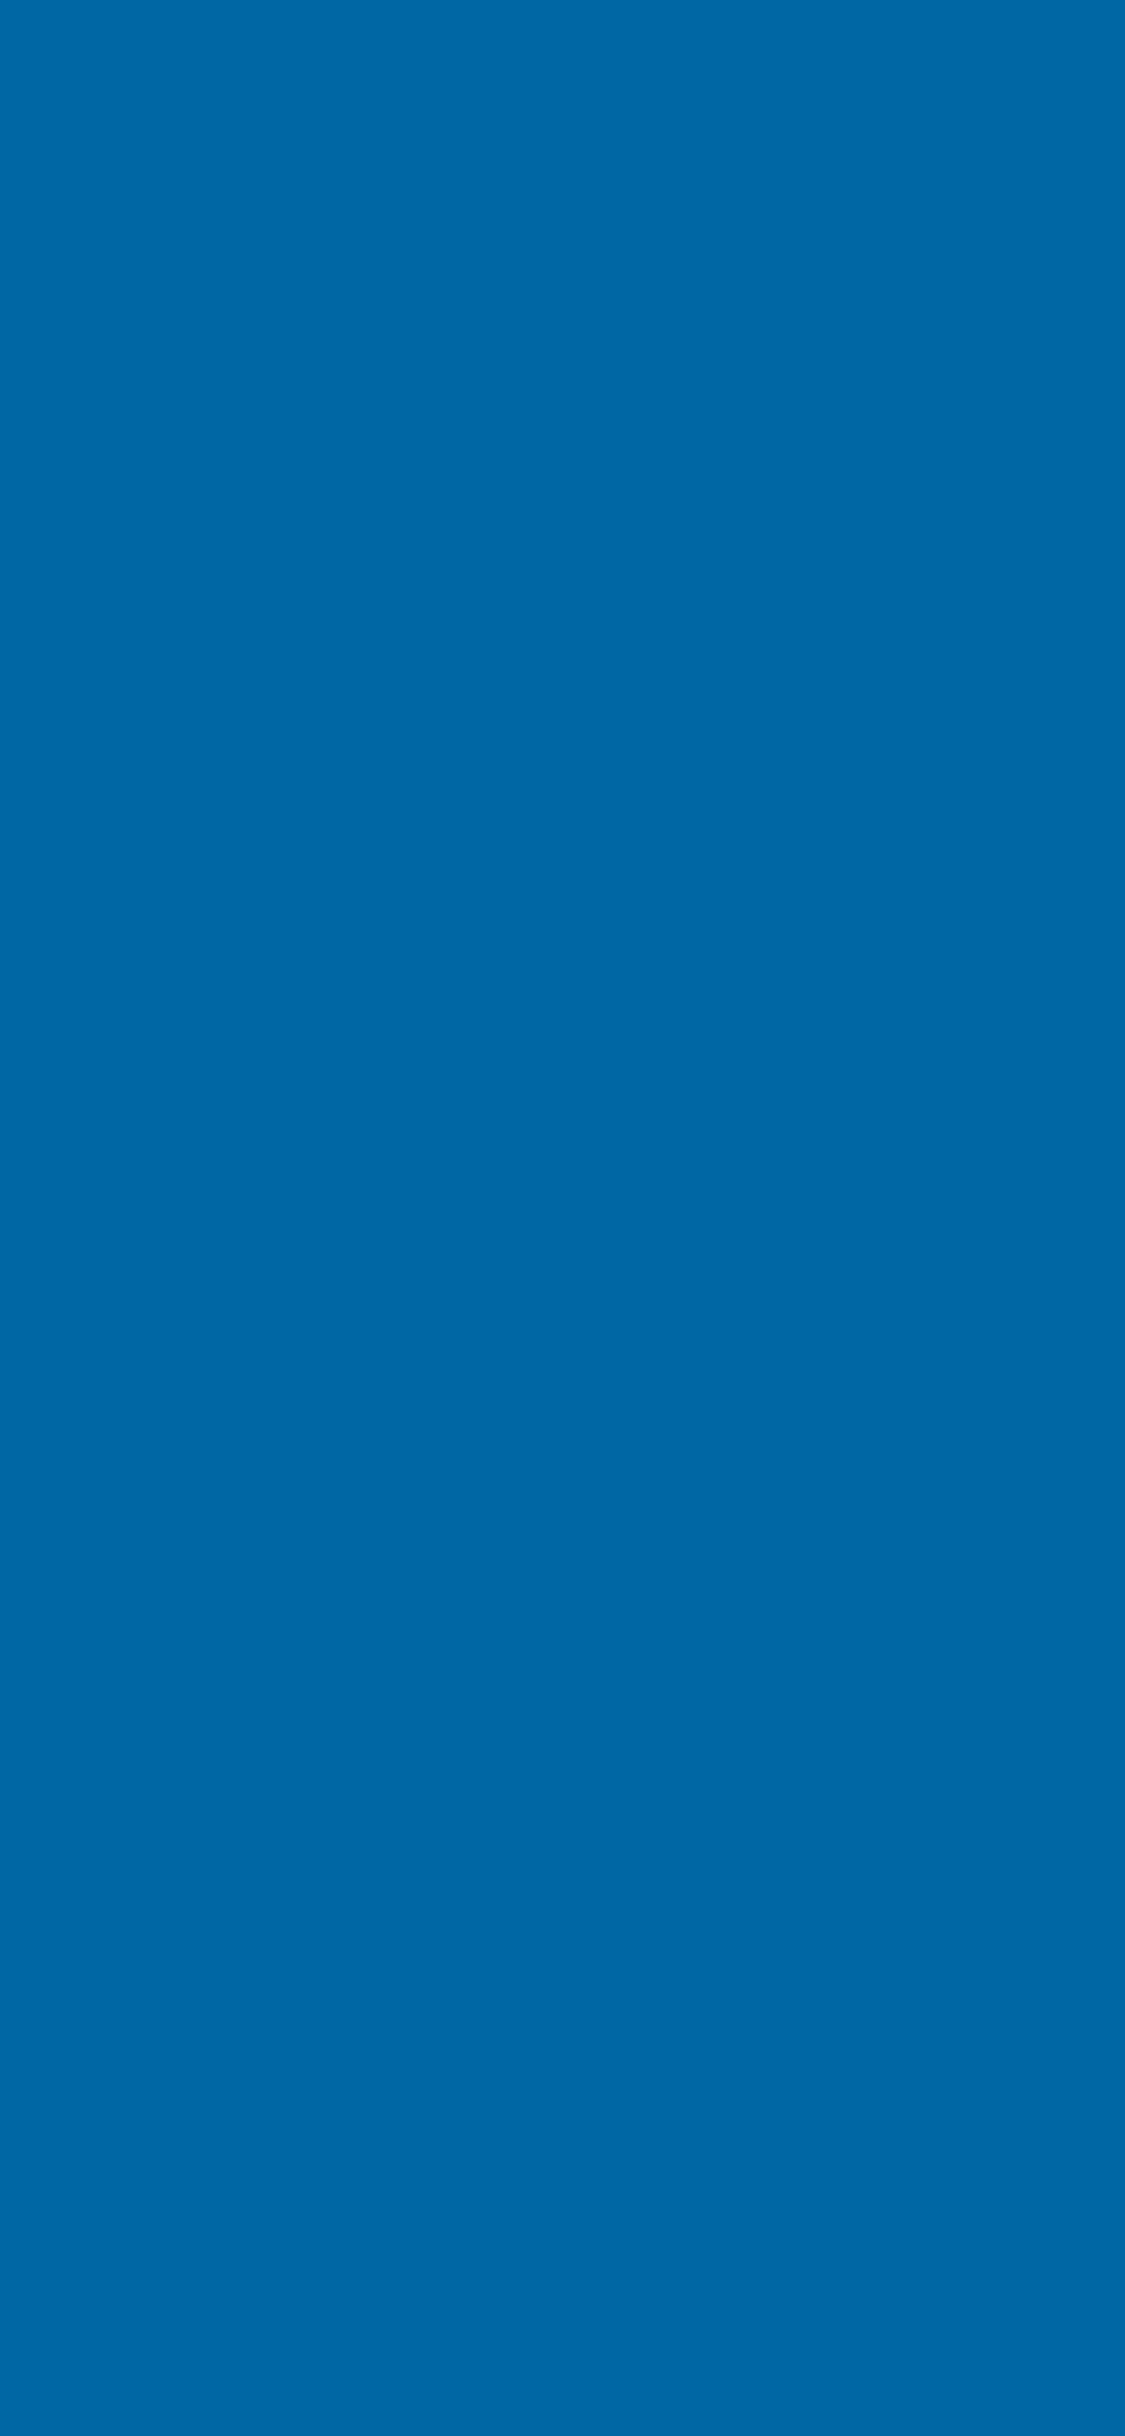 1125x2436 Medium Persian Blue Solid Color Background